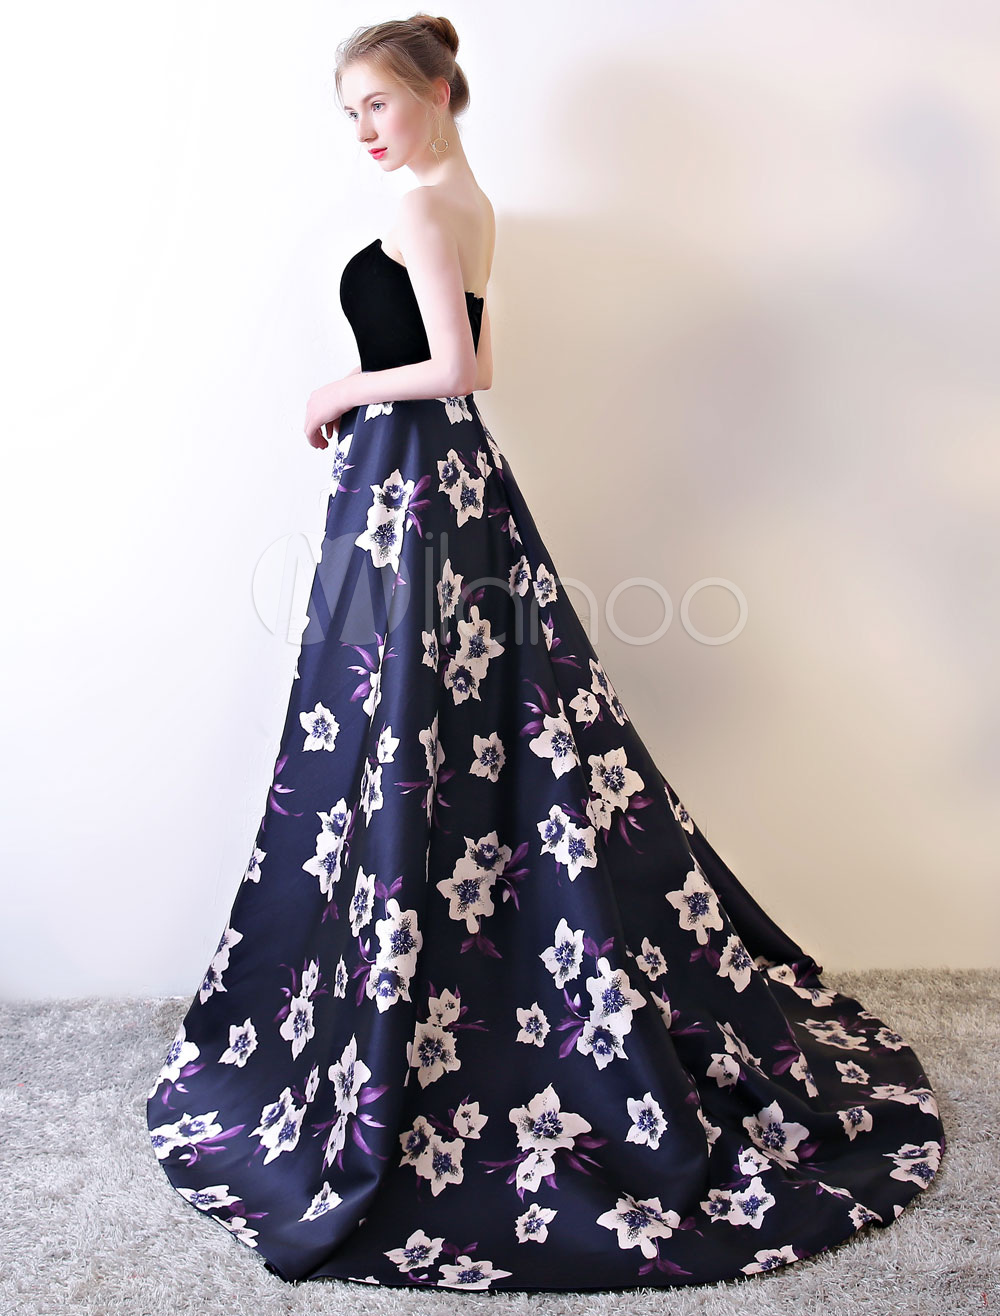 Buy Strapless Prom Dress Black Floral Print Prom Gown Velvet Satin Sweetheart Neckline Formal Occasion Dress With Train for $145.19 in Milanoo store